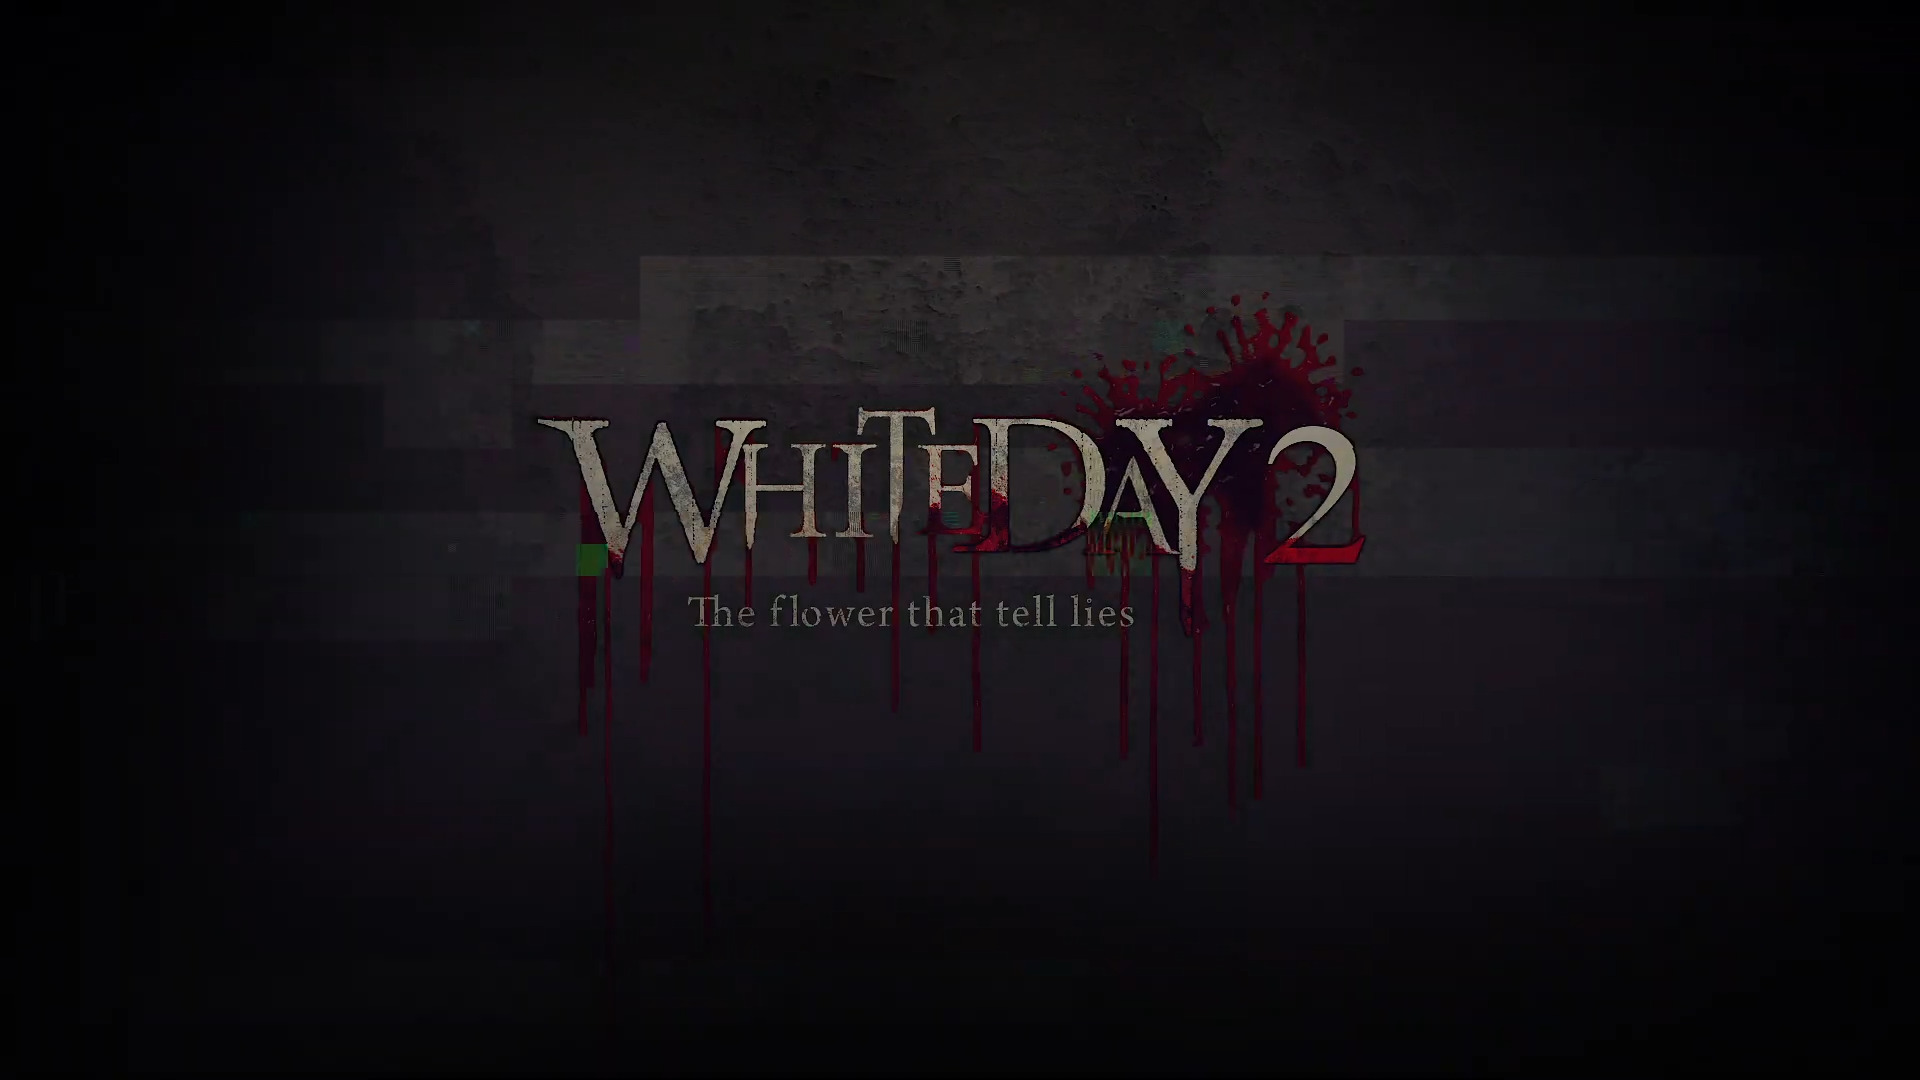 White Day 2 The